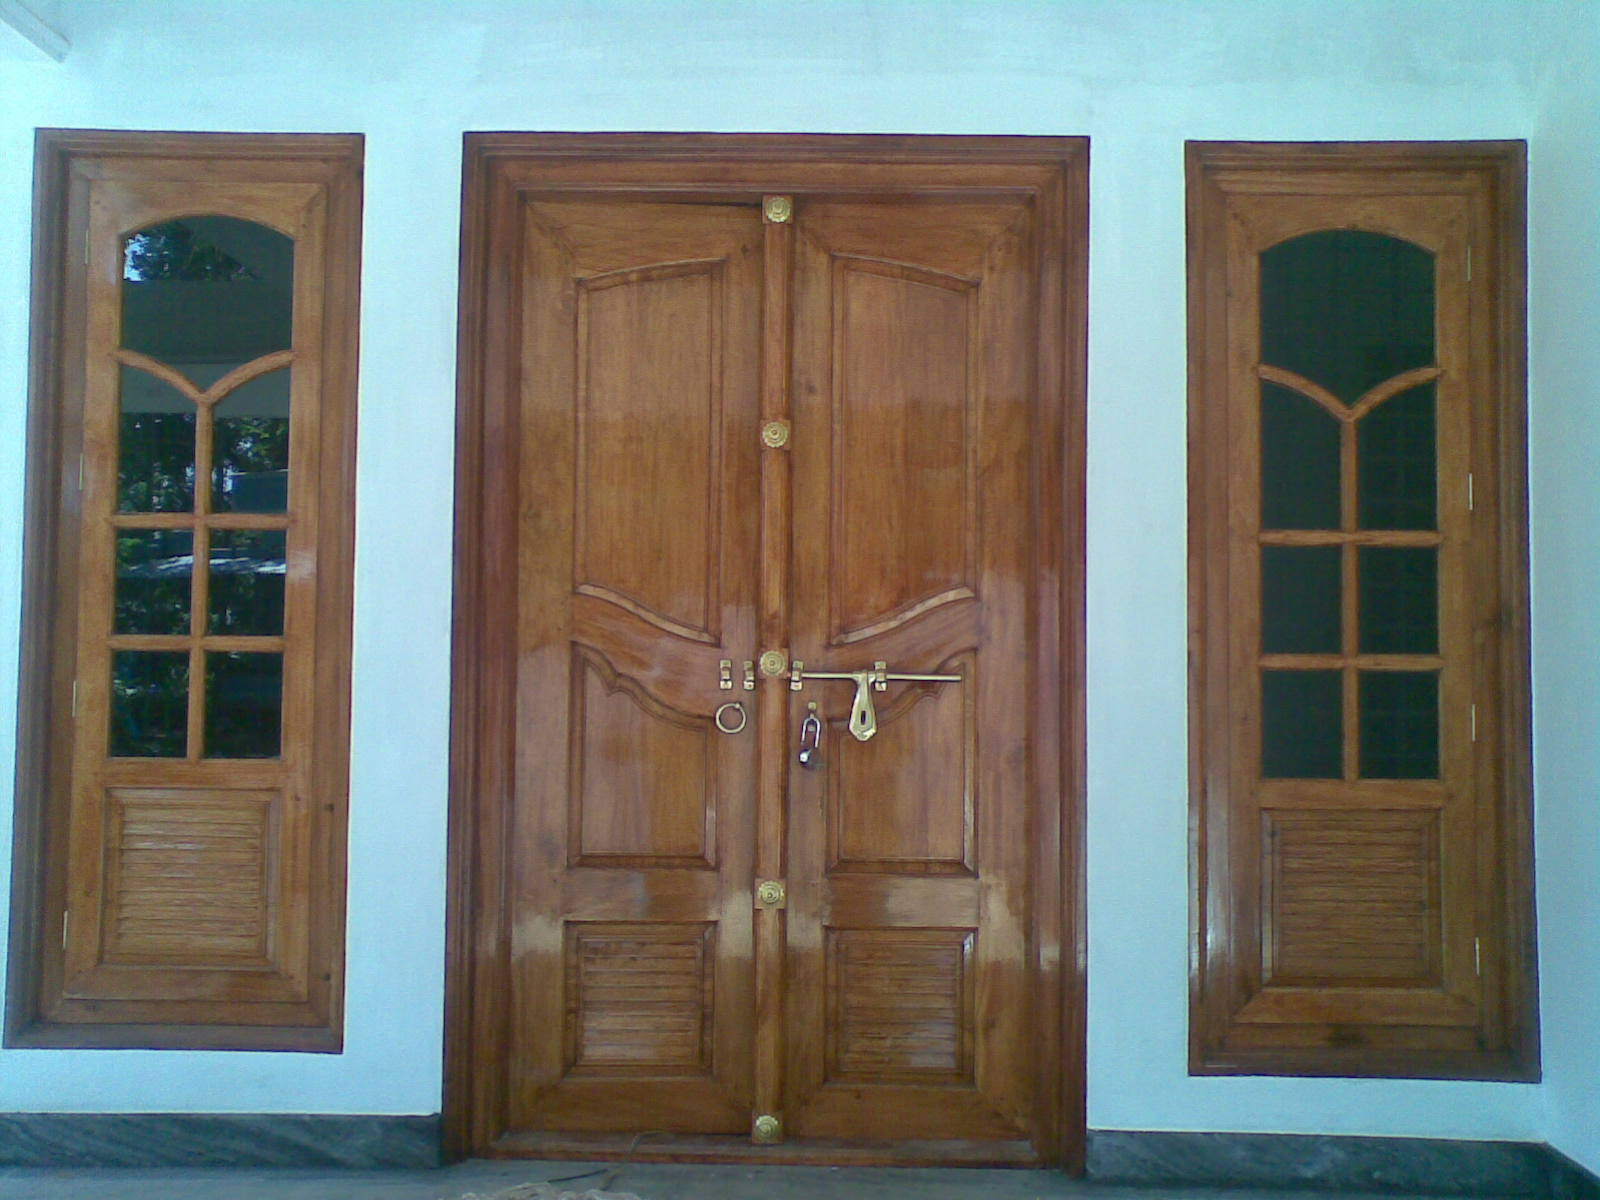 Bavas wood works kerala style wooden front door double for Home front door design indian style